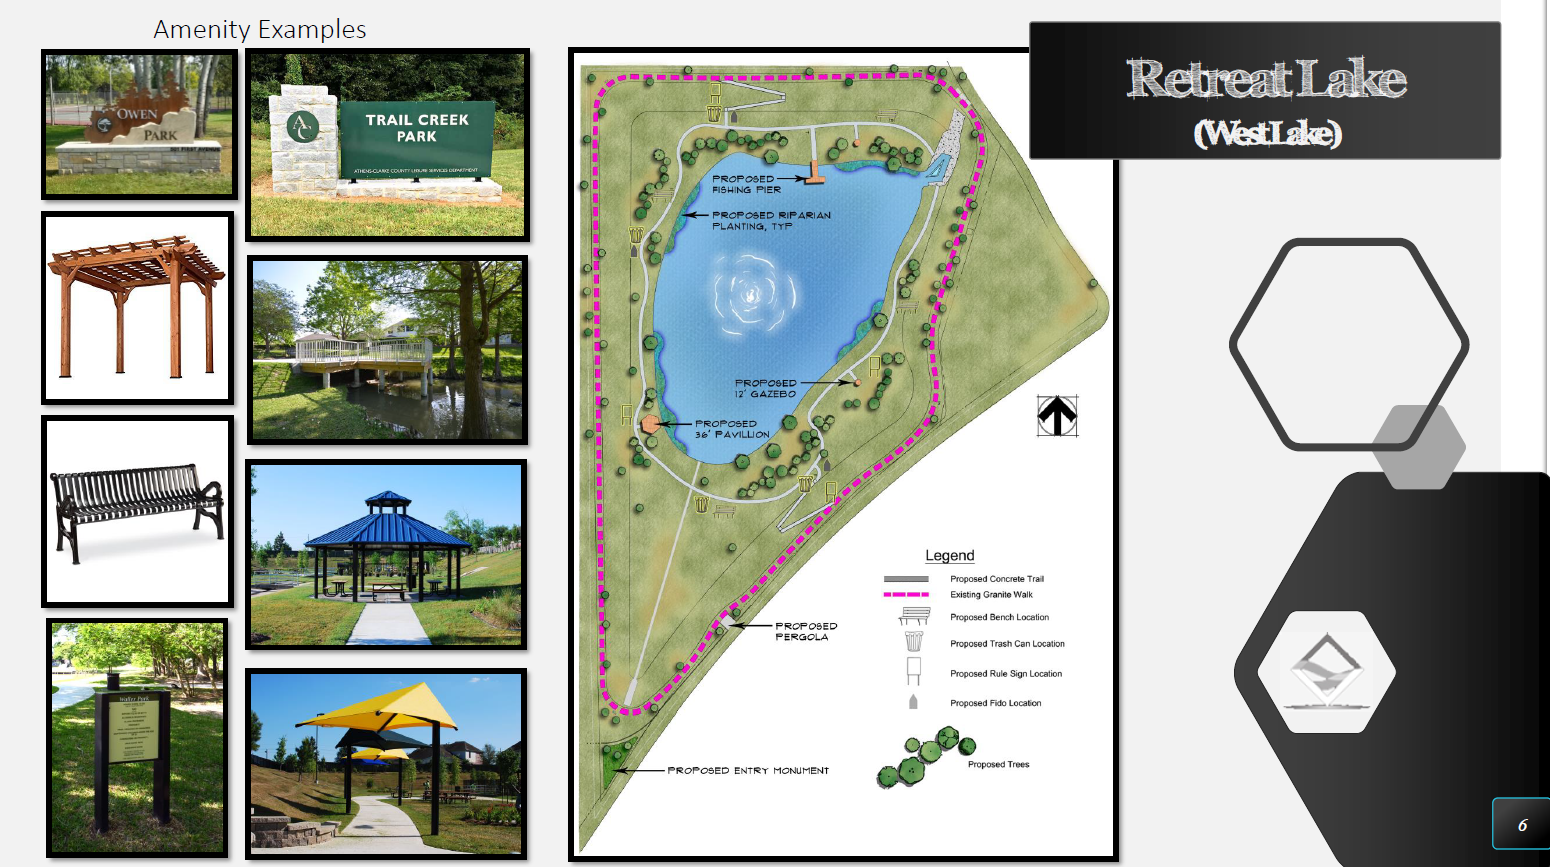 Retreat Lake (West Lake) - Amenity Examples